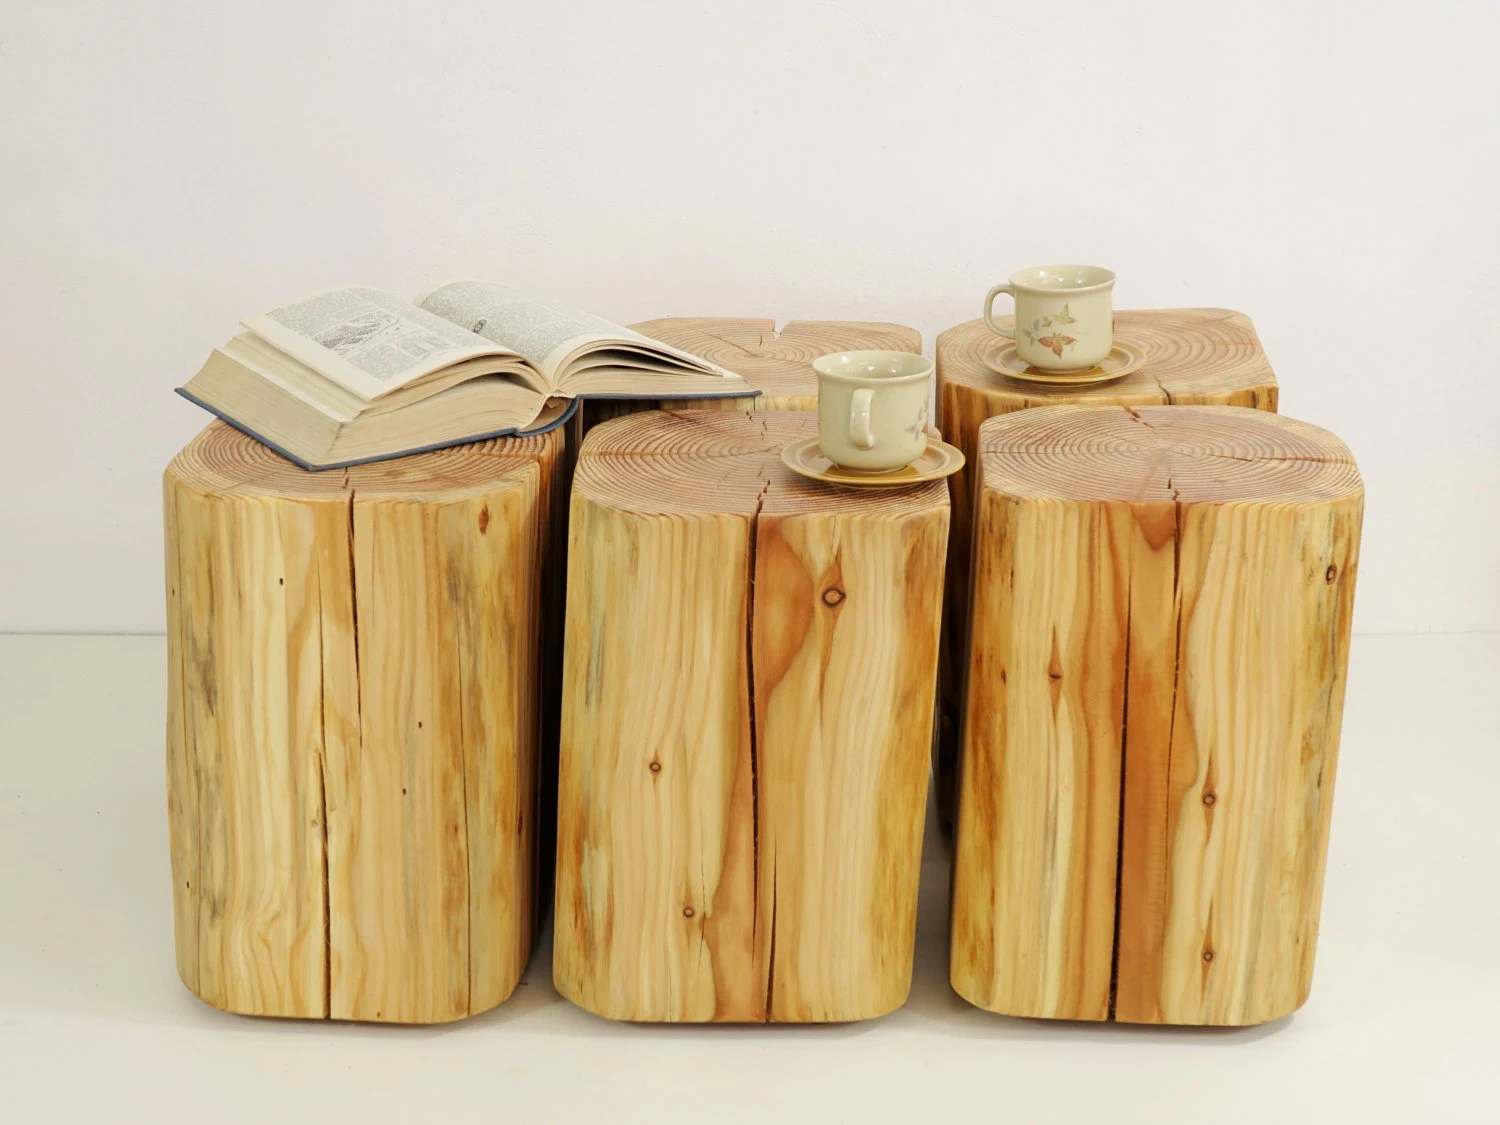 Wooden Block Table Tree Trunks Set Timber Wood Table